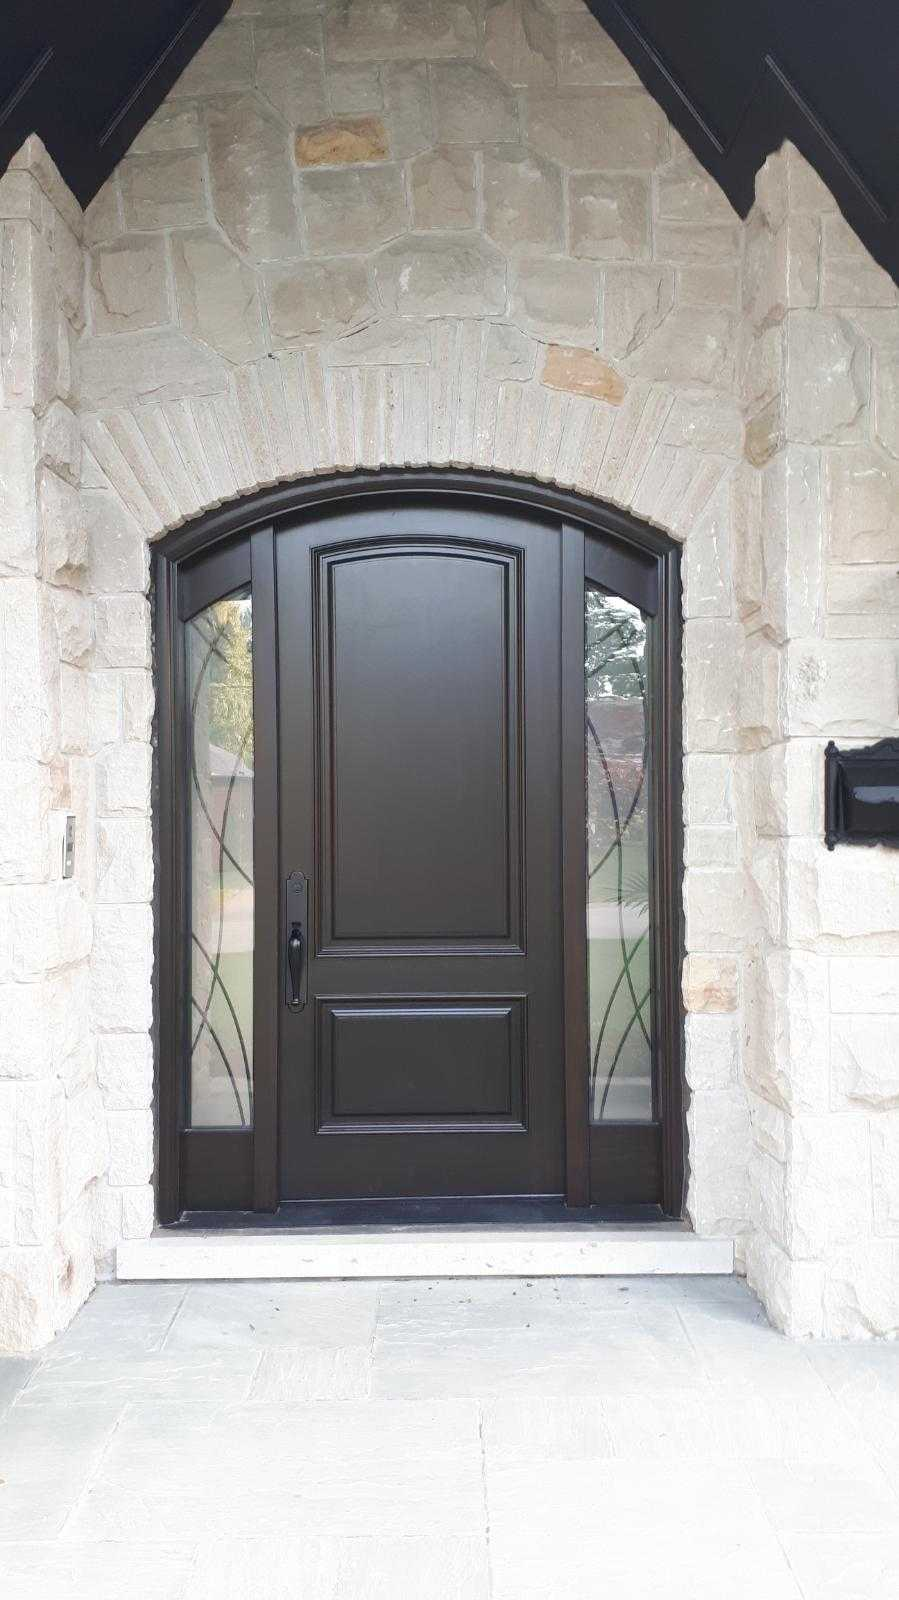 """No great thing is created suddenly."" #SolidWood, #Doors, #Wood #Mahogany, #CustomMadeDoors, #EntryDoors.#DistinctiveLo­ok, #FityourHome Made by #NorthwoodDoorsInc. Your best value and quality, #HandCraftedDoors. Every door #Manifactured by us has our corporate stamp - a testament to our dedication and passion in #Woodwork. Let #NorthwoodDoorsInc. add to your home's #CurbAppeal by enhancing the quality and beauty of your #EntryDoors. Visit our #Showroom to envision how one of our many #doors on display might look like at your #Home. Contact us today Tel. 416-253-2034, info@northwooddoors.com, www.northwooddoor.com — in Toronto, Ontario"